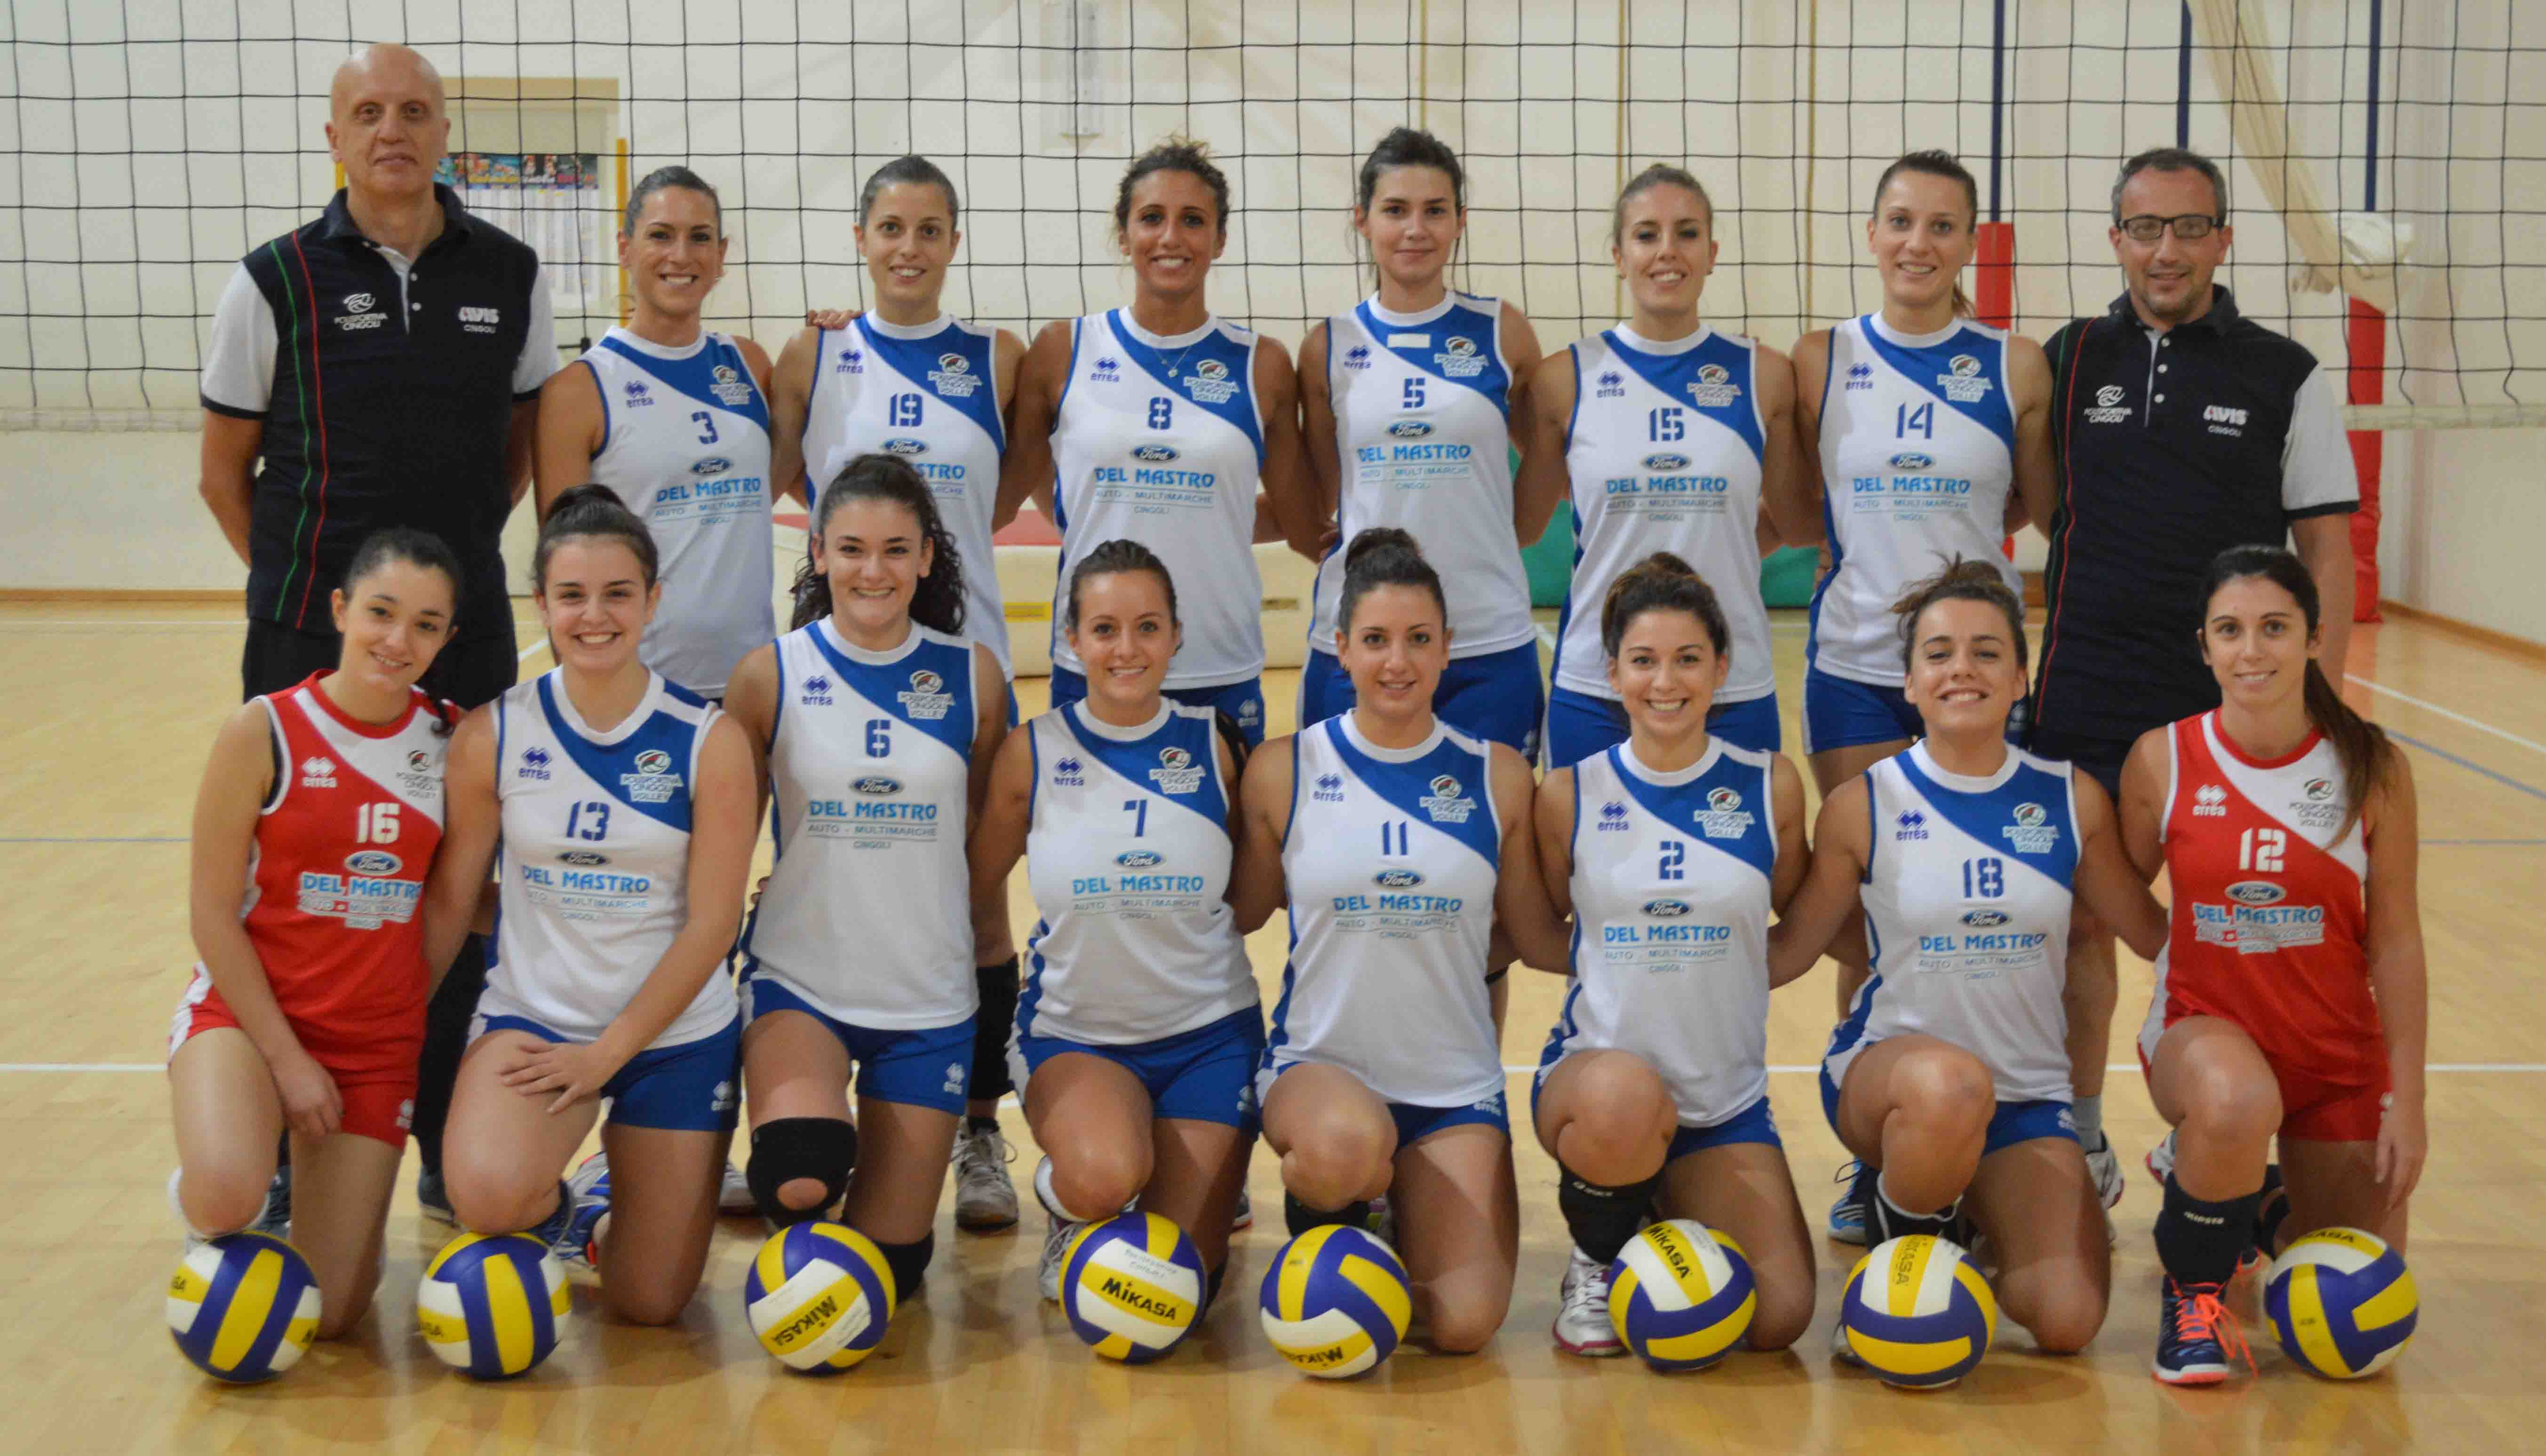 DelMastro Cingoli 1aFVOLLEY MC 1516